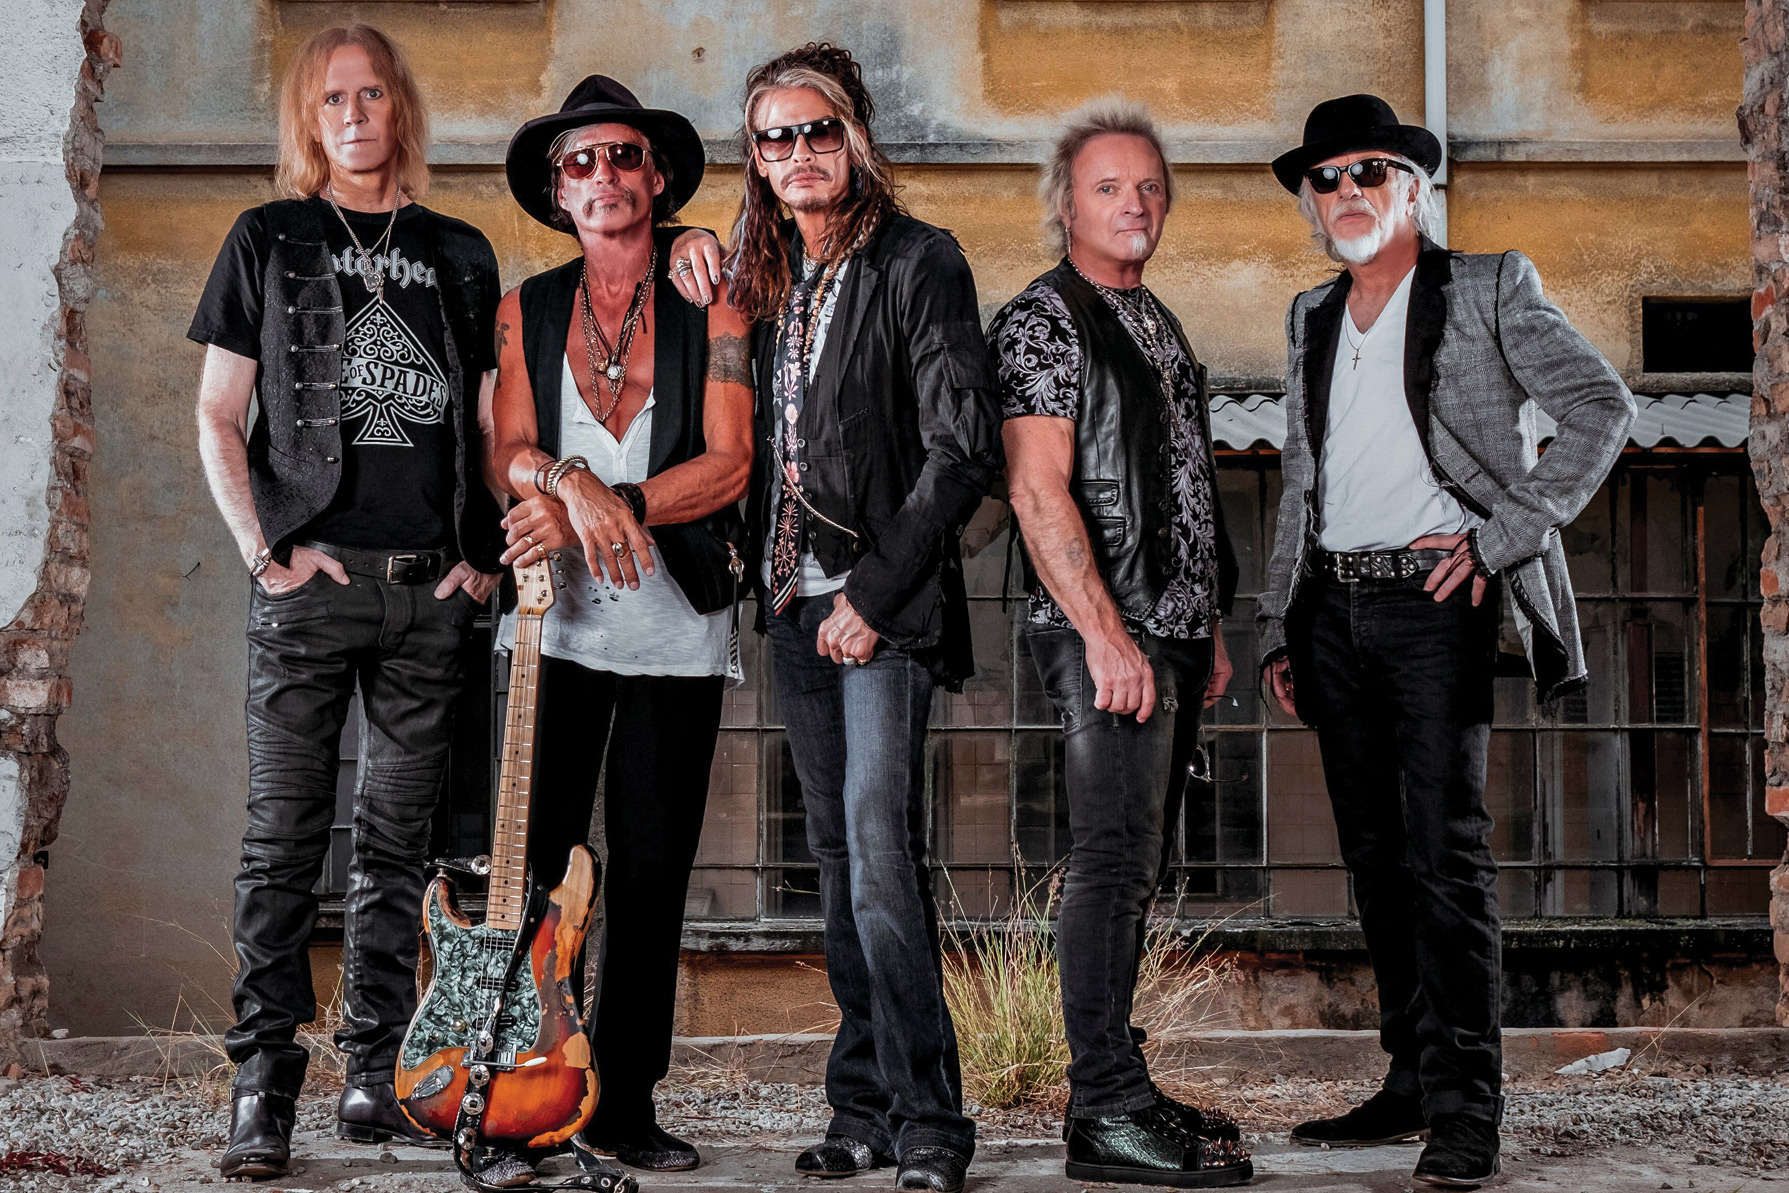 Aerosmith, BTS Donate Autographed Gear to MusiCares Charity Auction - EpicNews